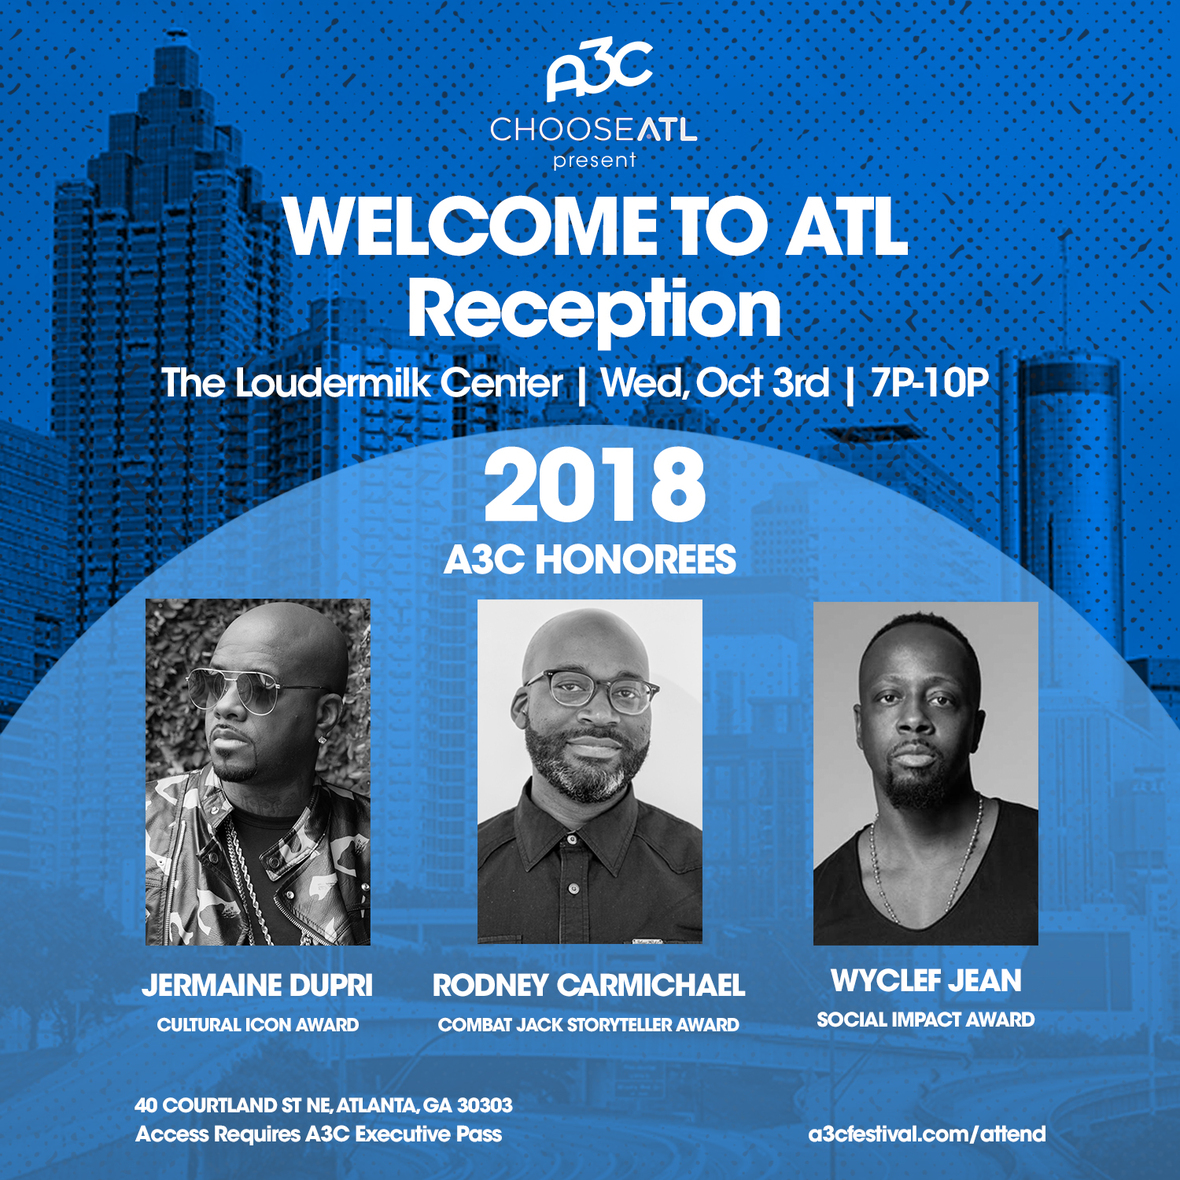 "Wyclef Jean, Jermaine Dupri and Rodney Carmichael to be Honored at this Year's ChooseATL ""Welcome to ATL Reception"" during A3C"